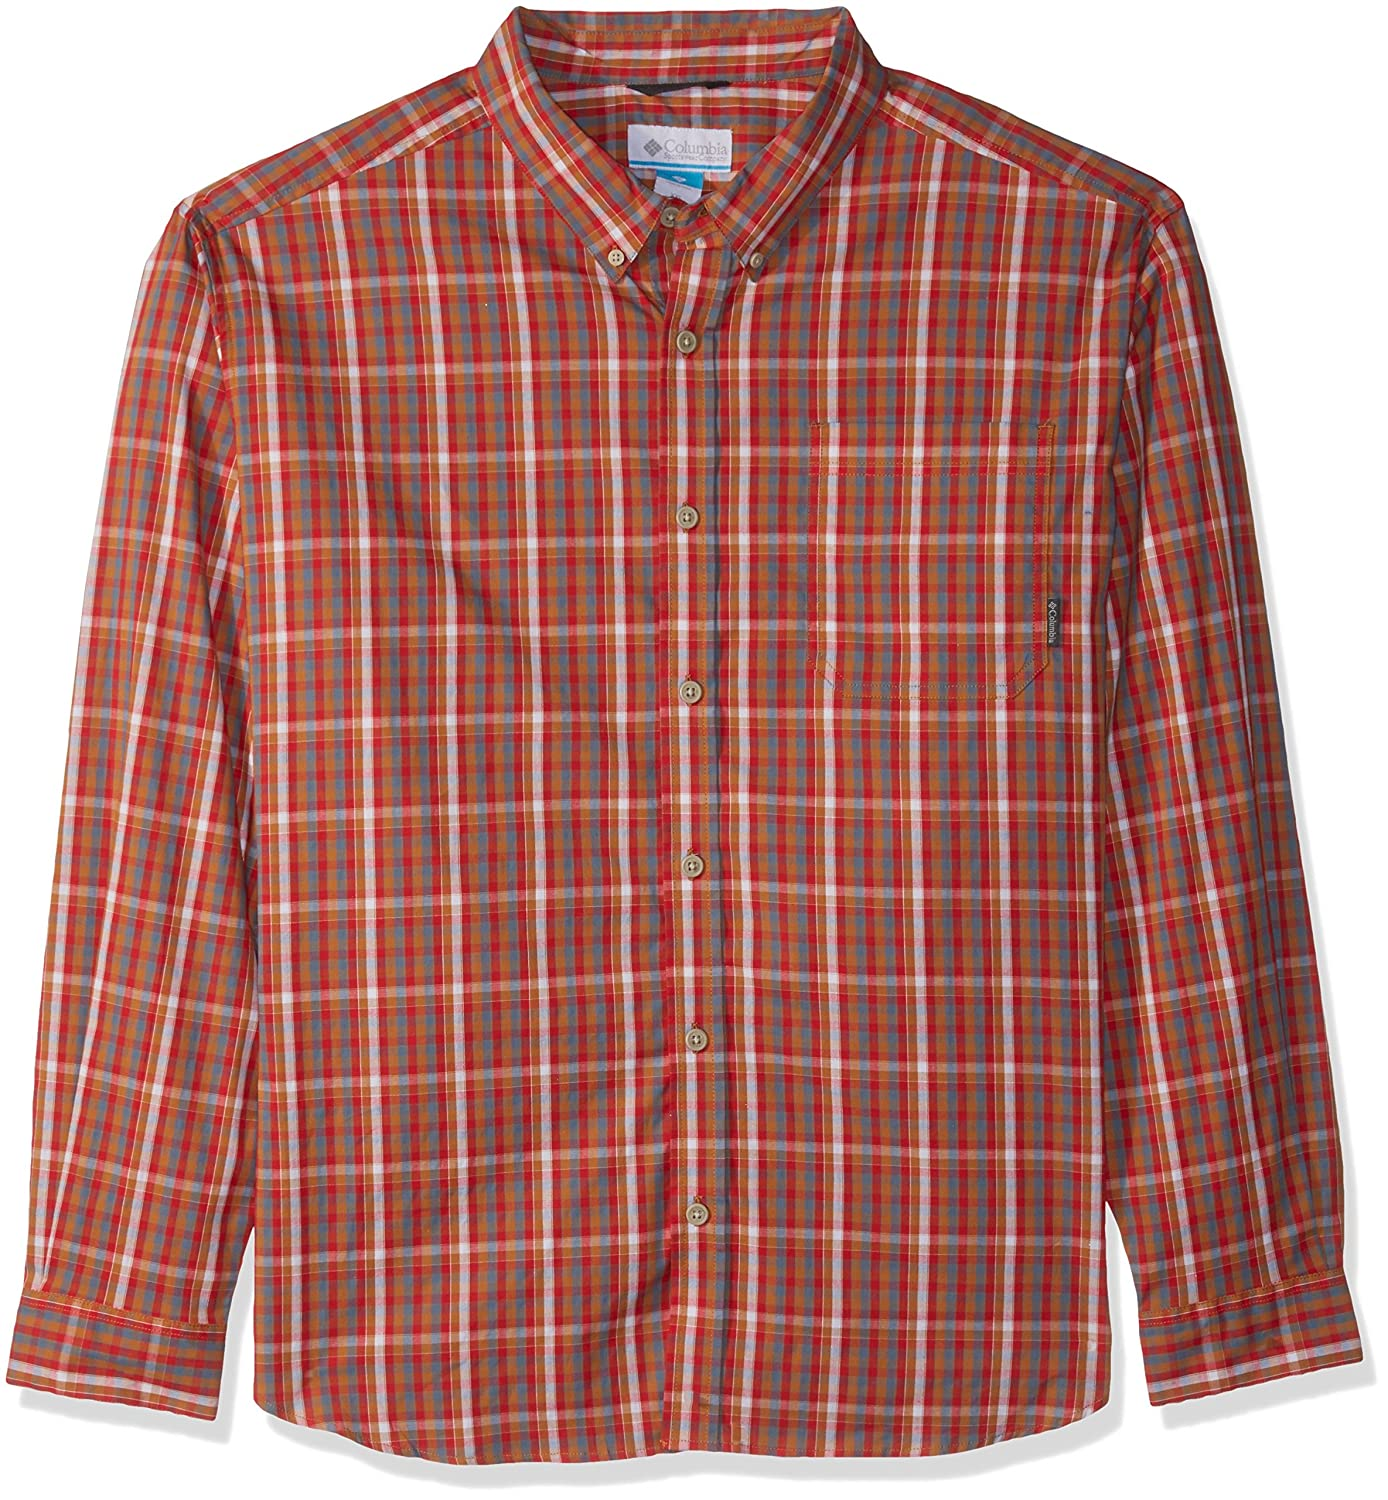 Canyon or Mini Plaid XL Columbia Homme 1552054 Manches Longues Chemisier